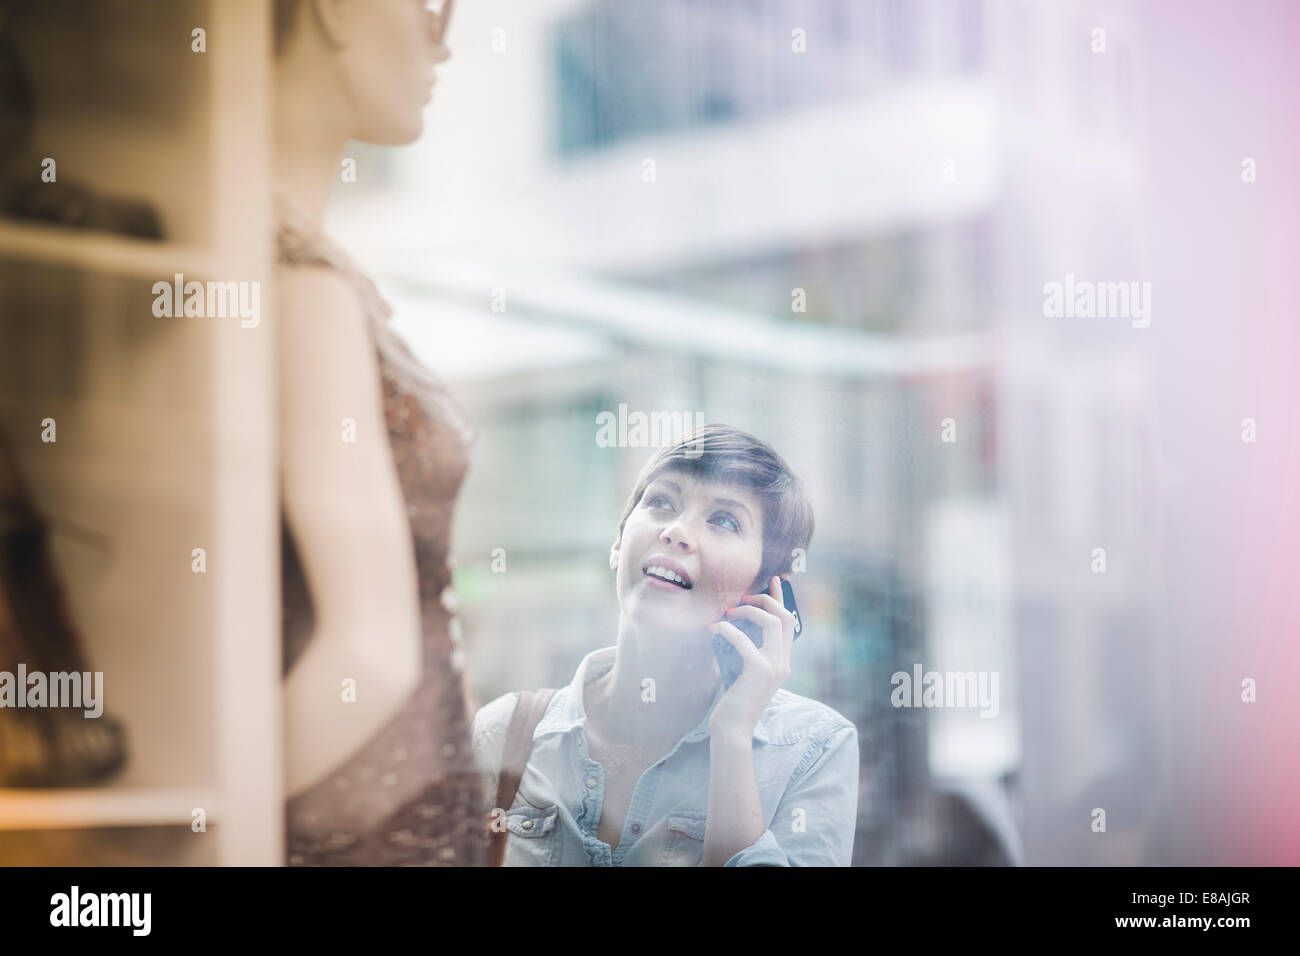 Shopper looking at shop window, New York, US - Stock Image